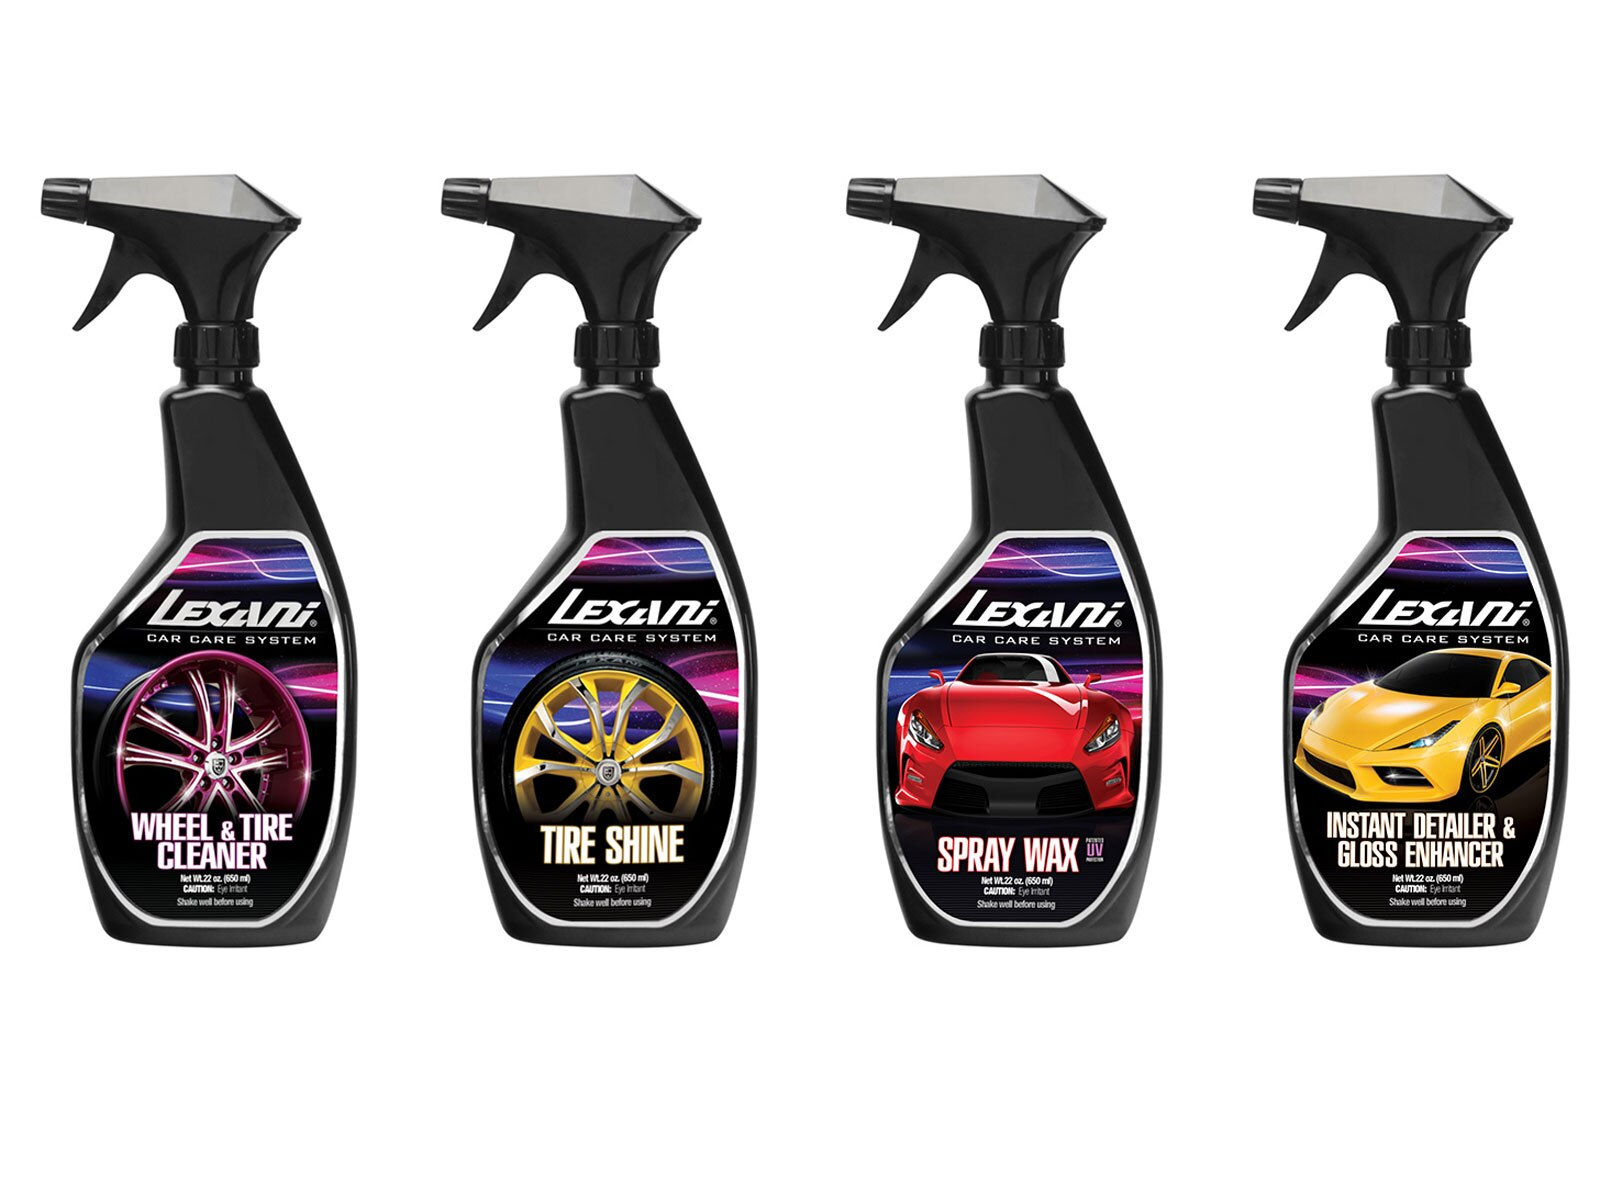 1212-lrmp-02-o-lexani-wheel-corporation-car-care-system-bottles1